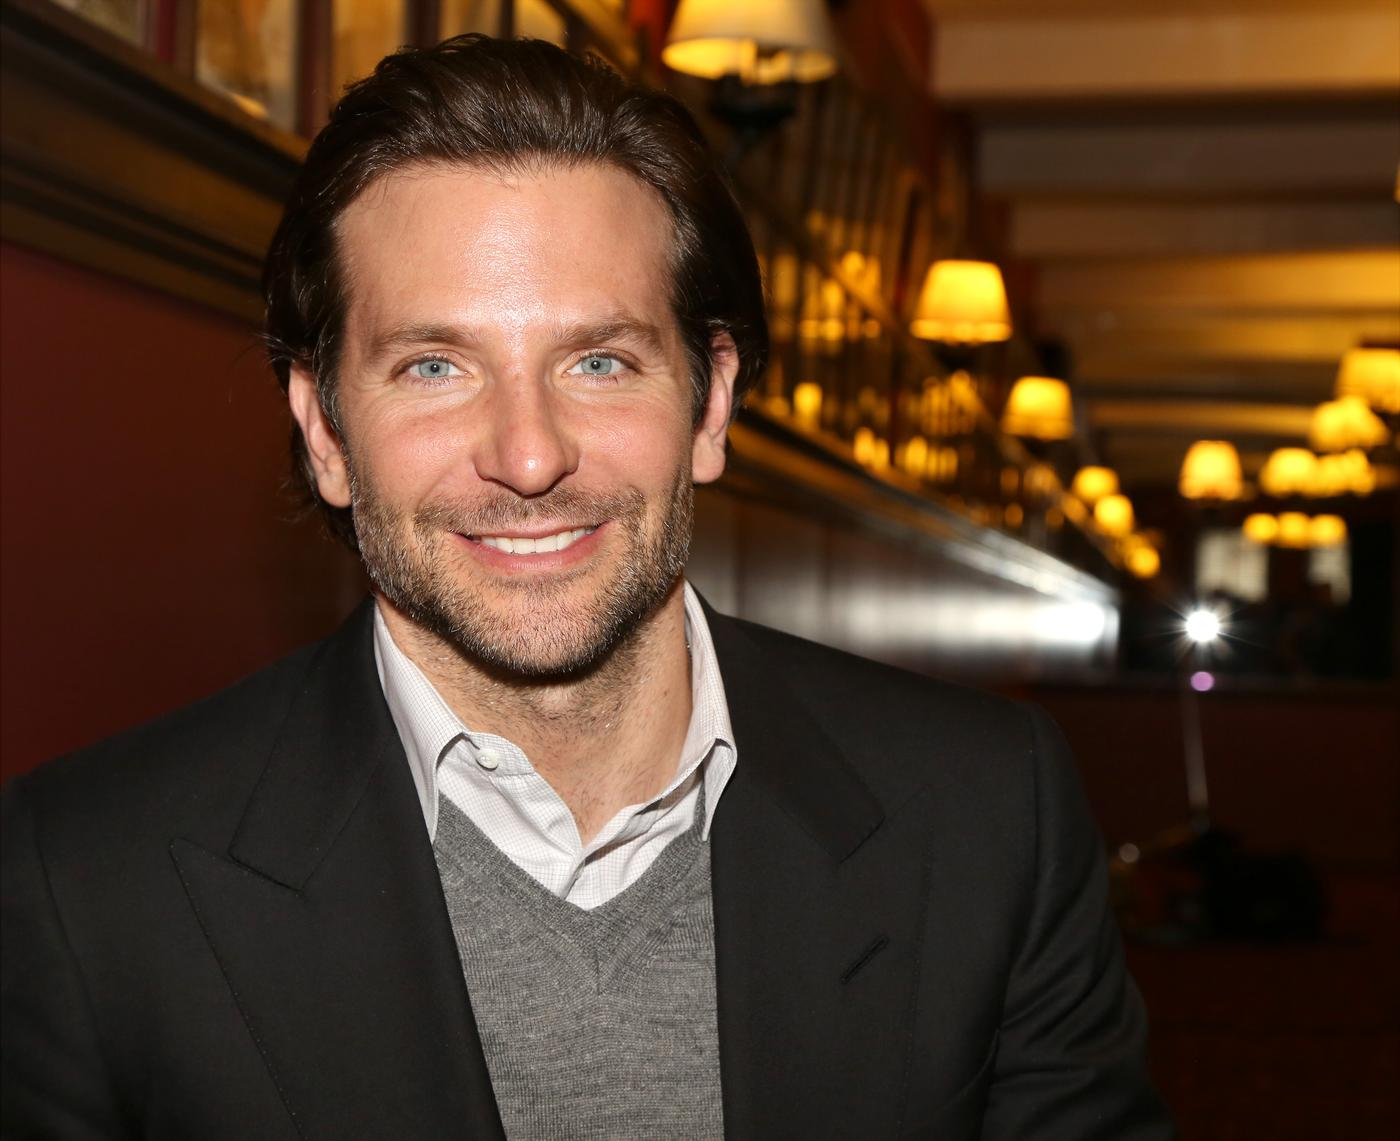 Bradley Cooper is truly a #HeForShe as he's going to fight for equal pay in Hollywood